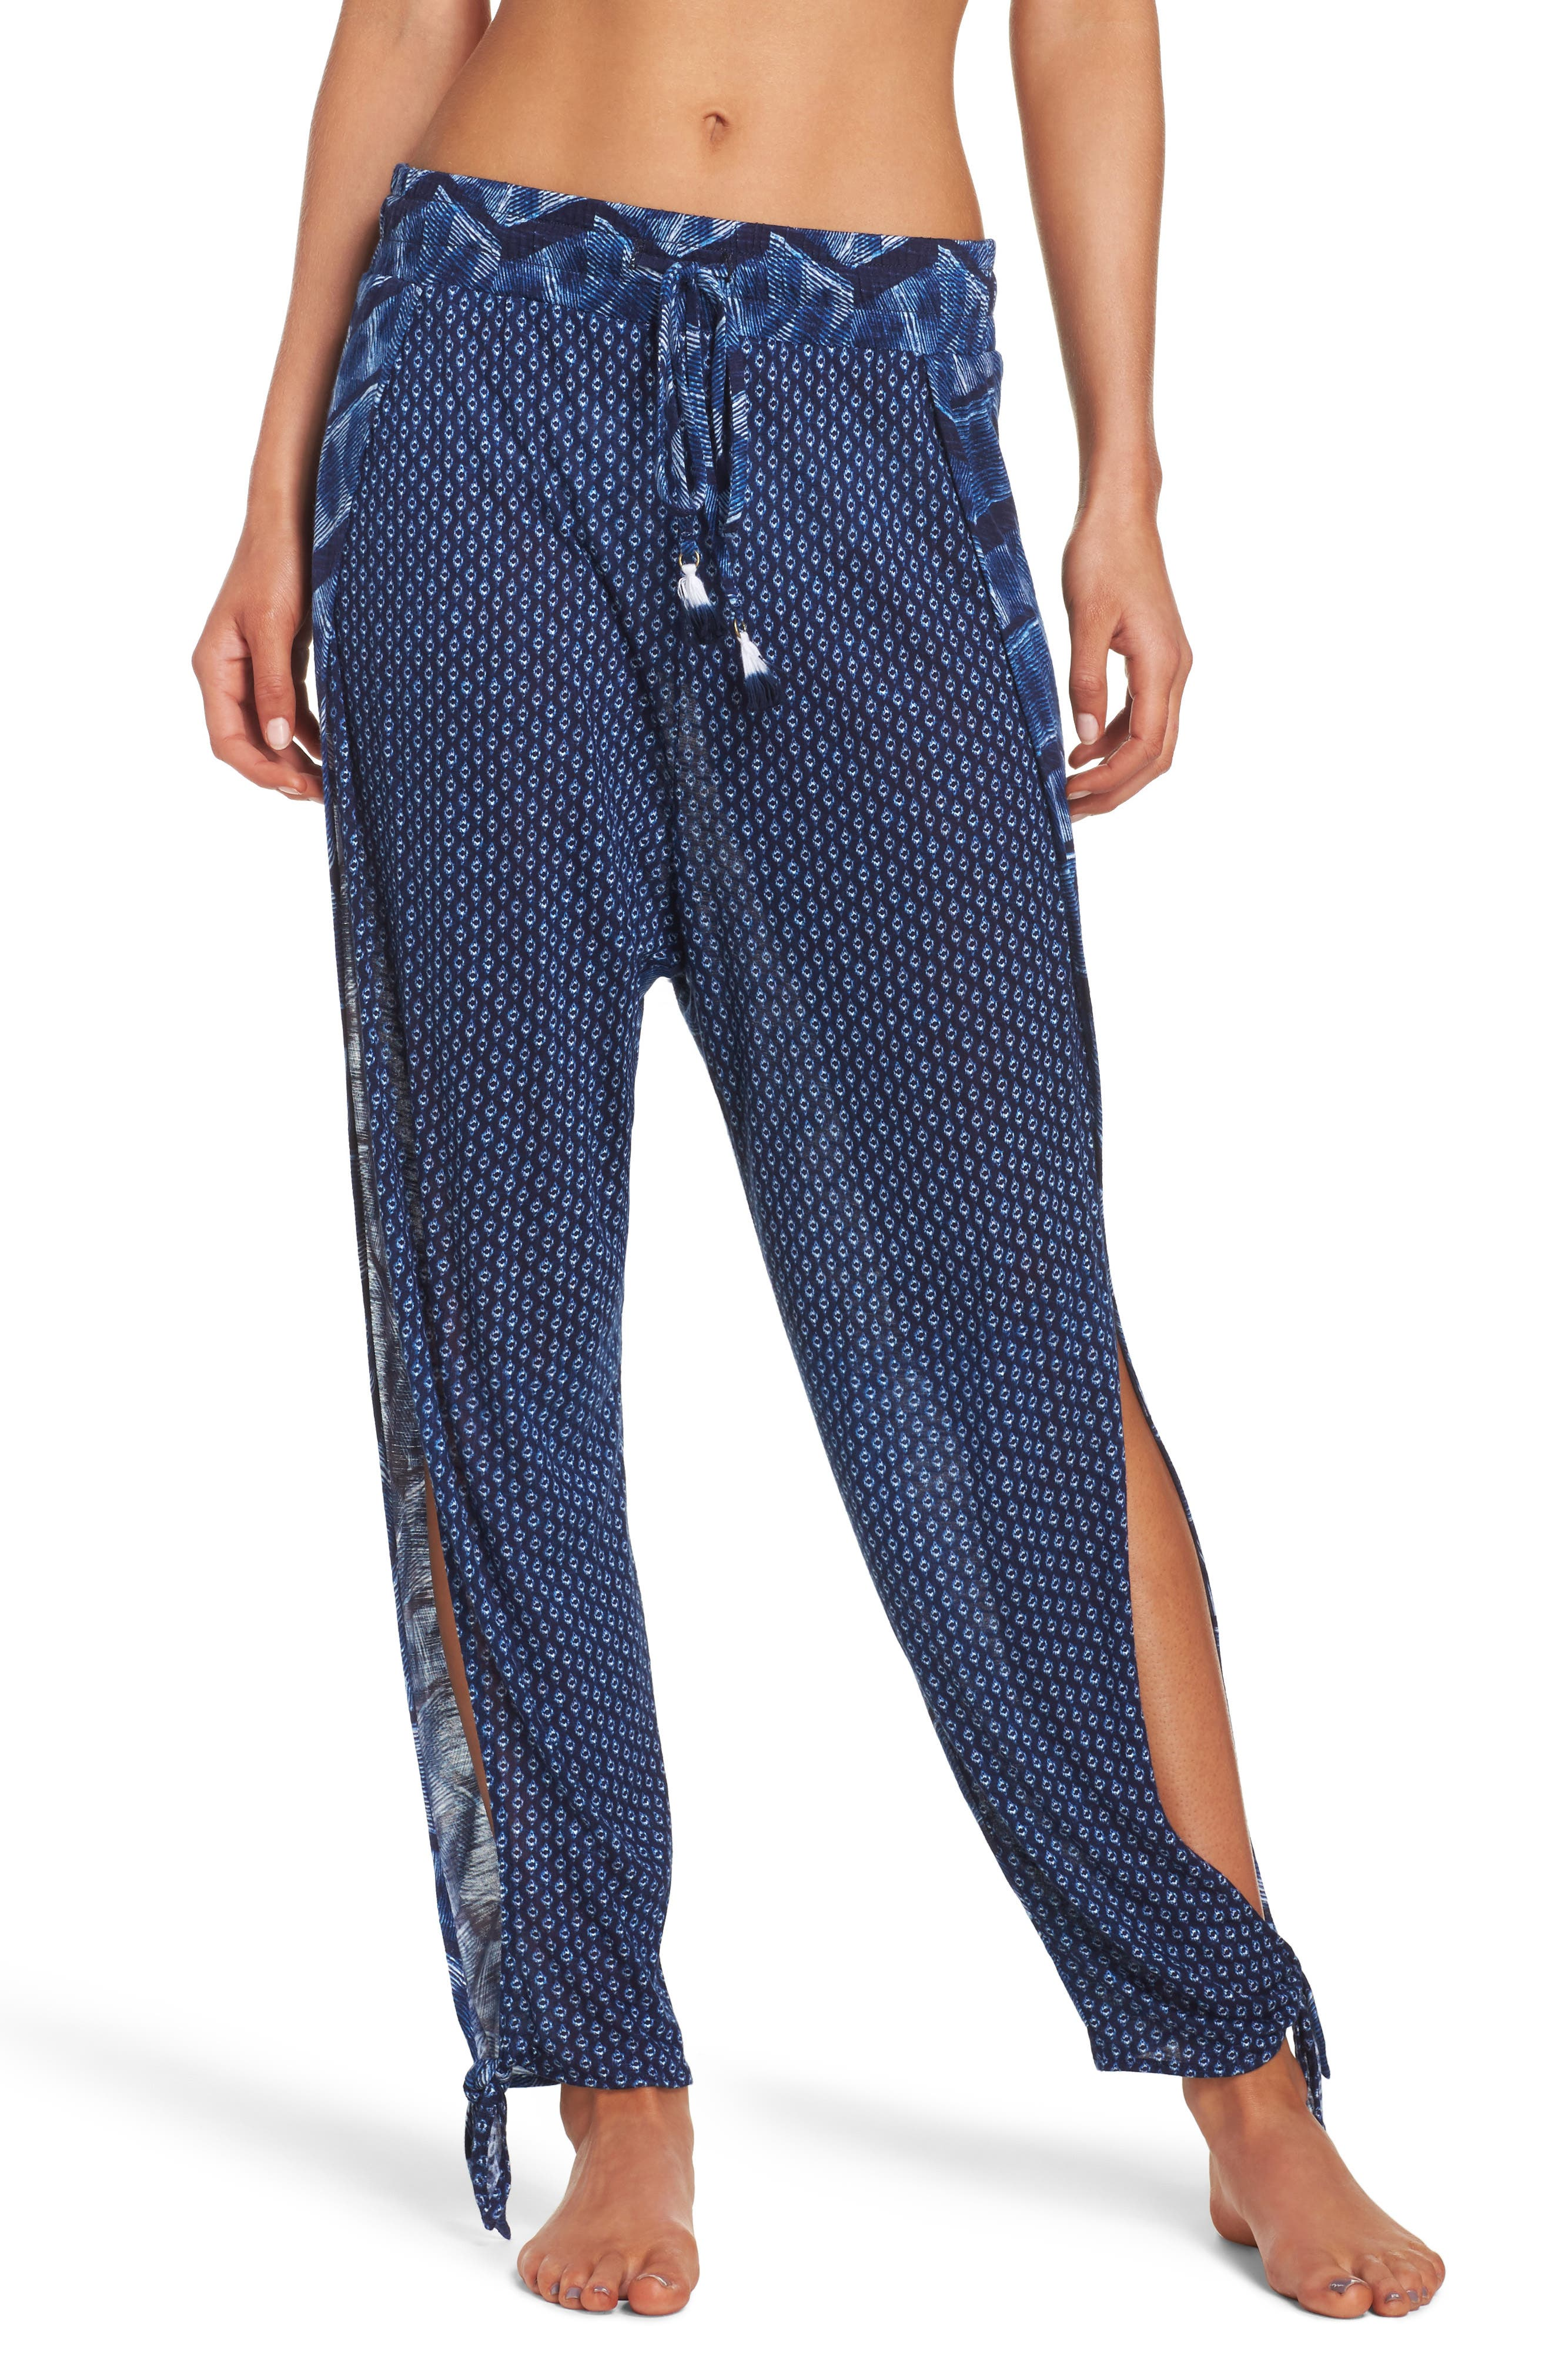 Alternate Image 1 Selected - Lucky Brand Nomad Ankle Tie Cover-Up Pants